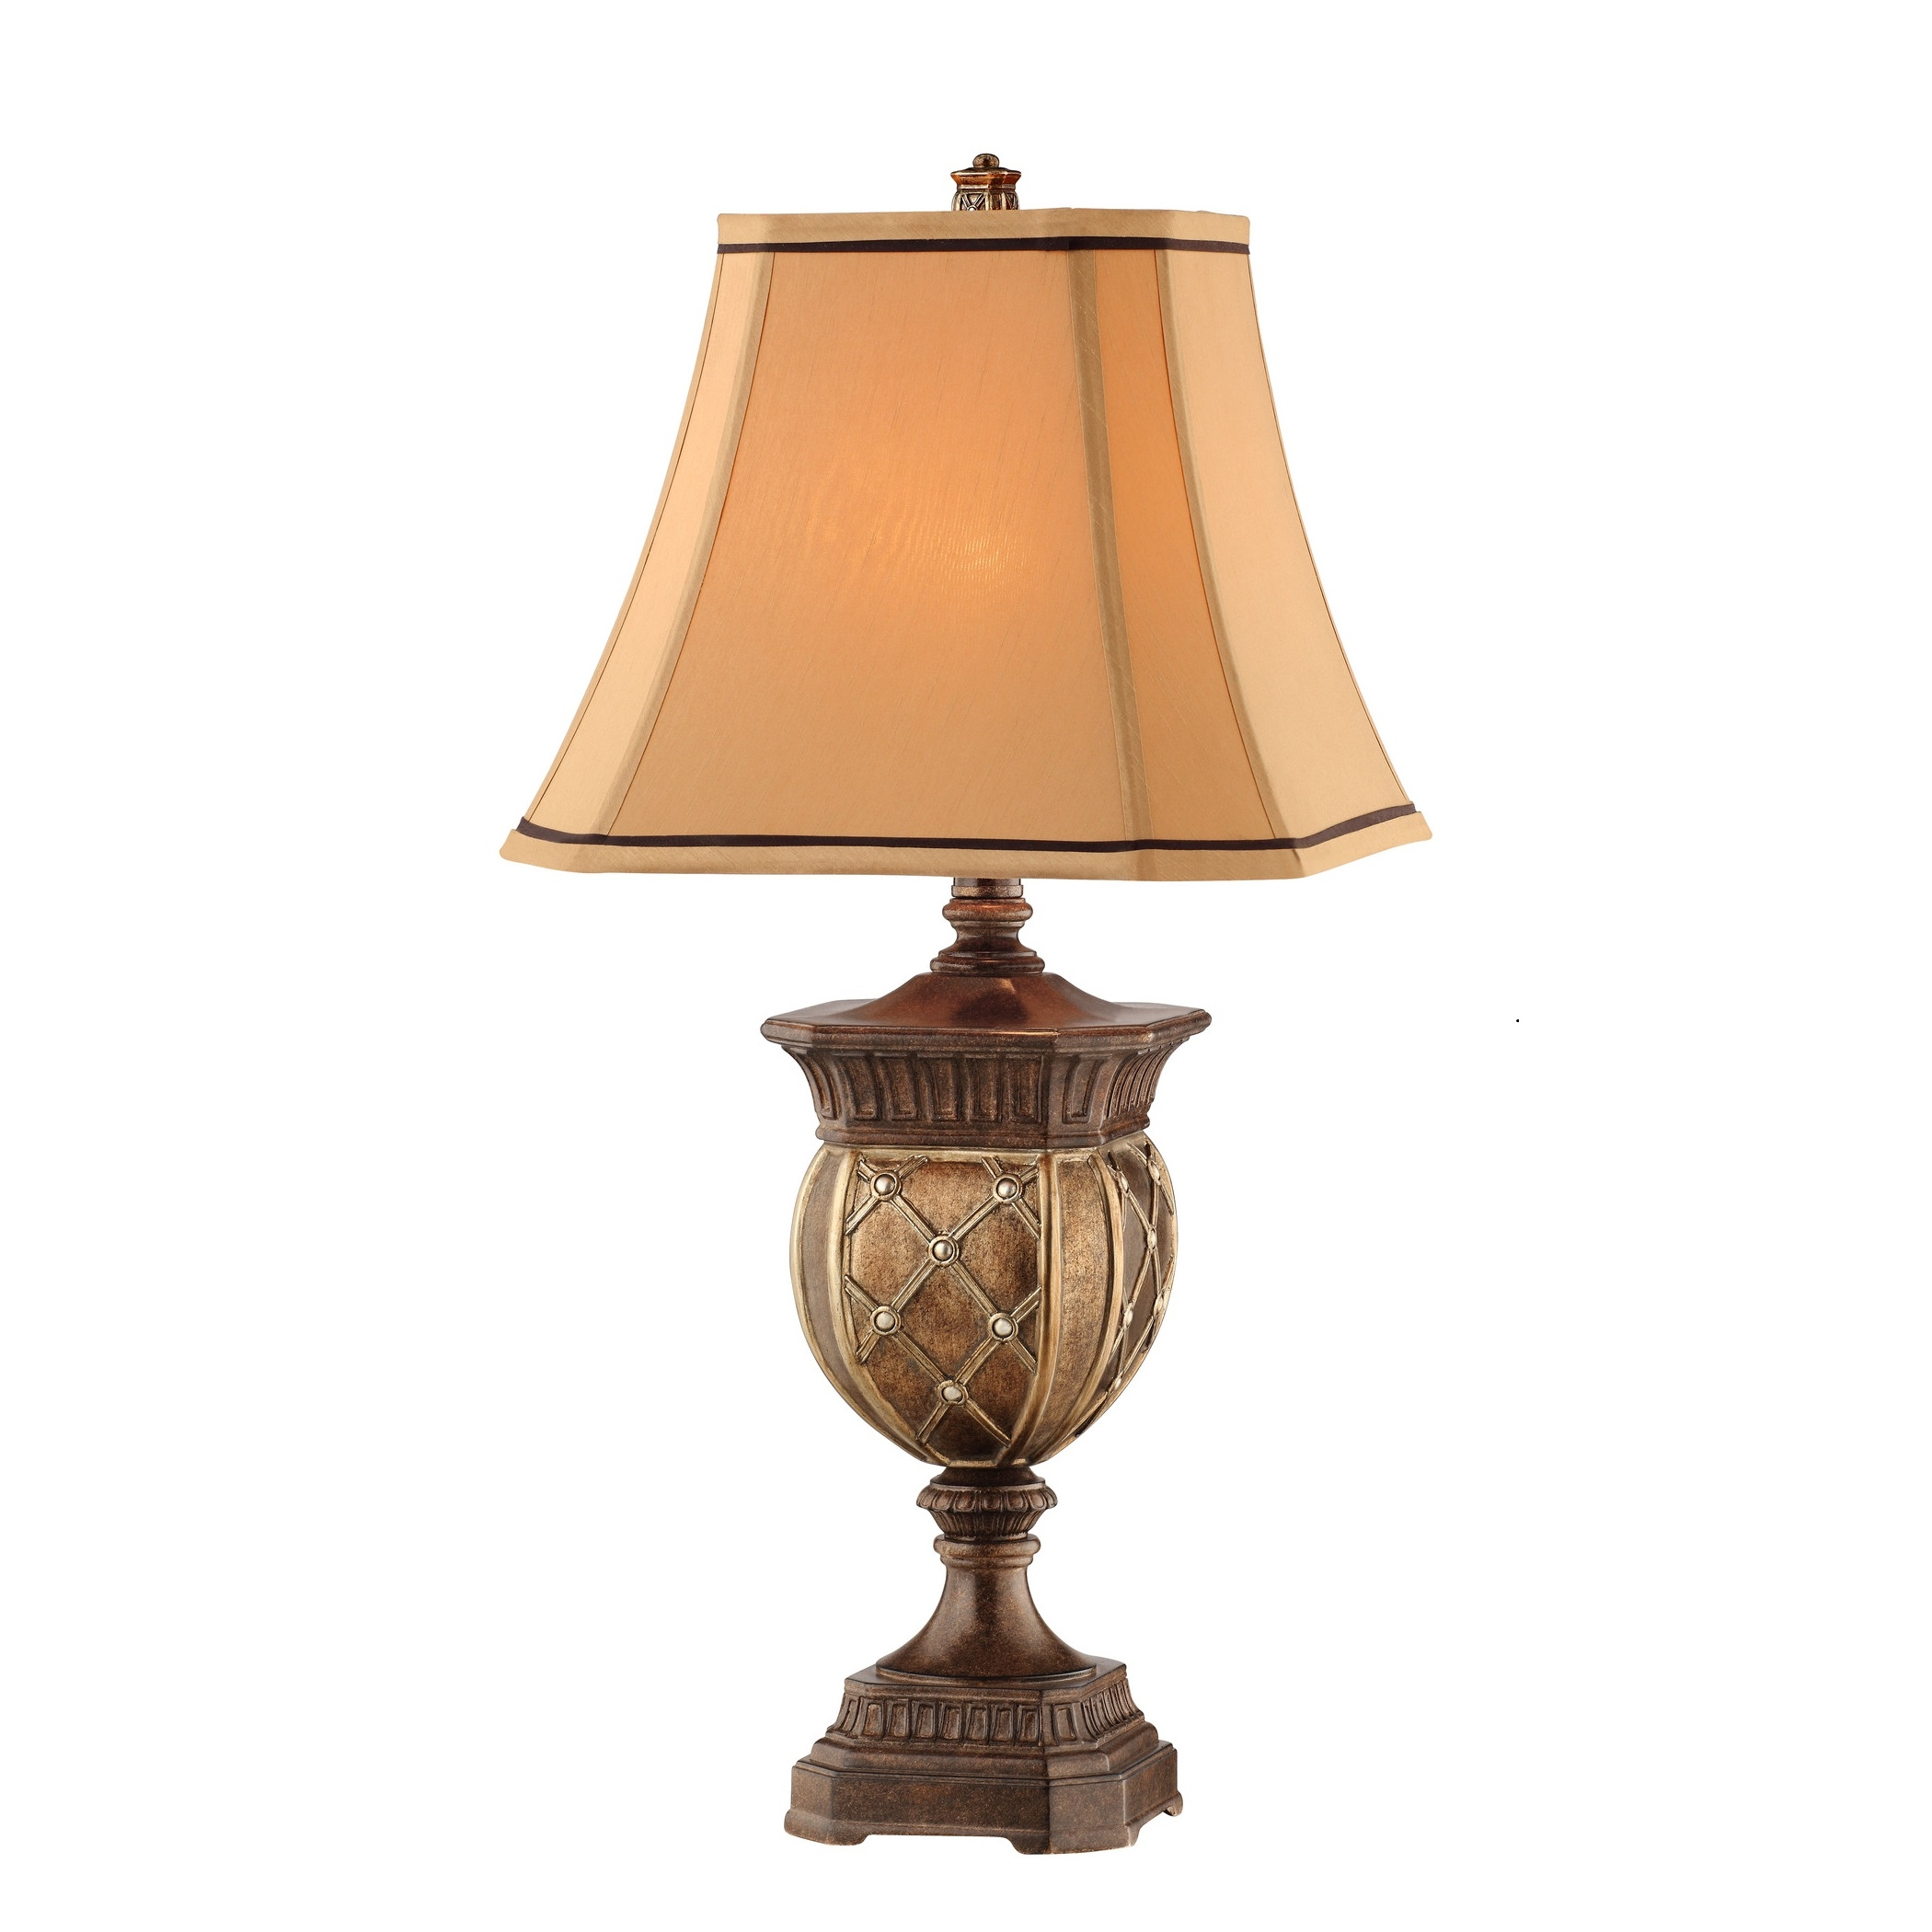 Stein World Traditions Table Lamp With Square Shade L